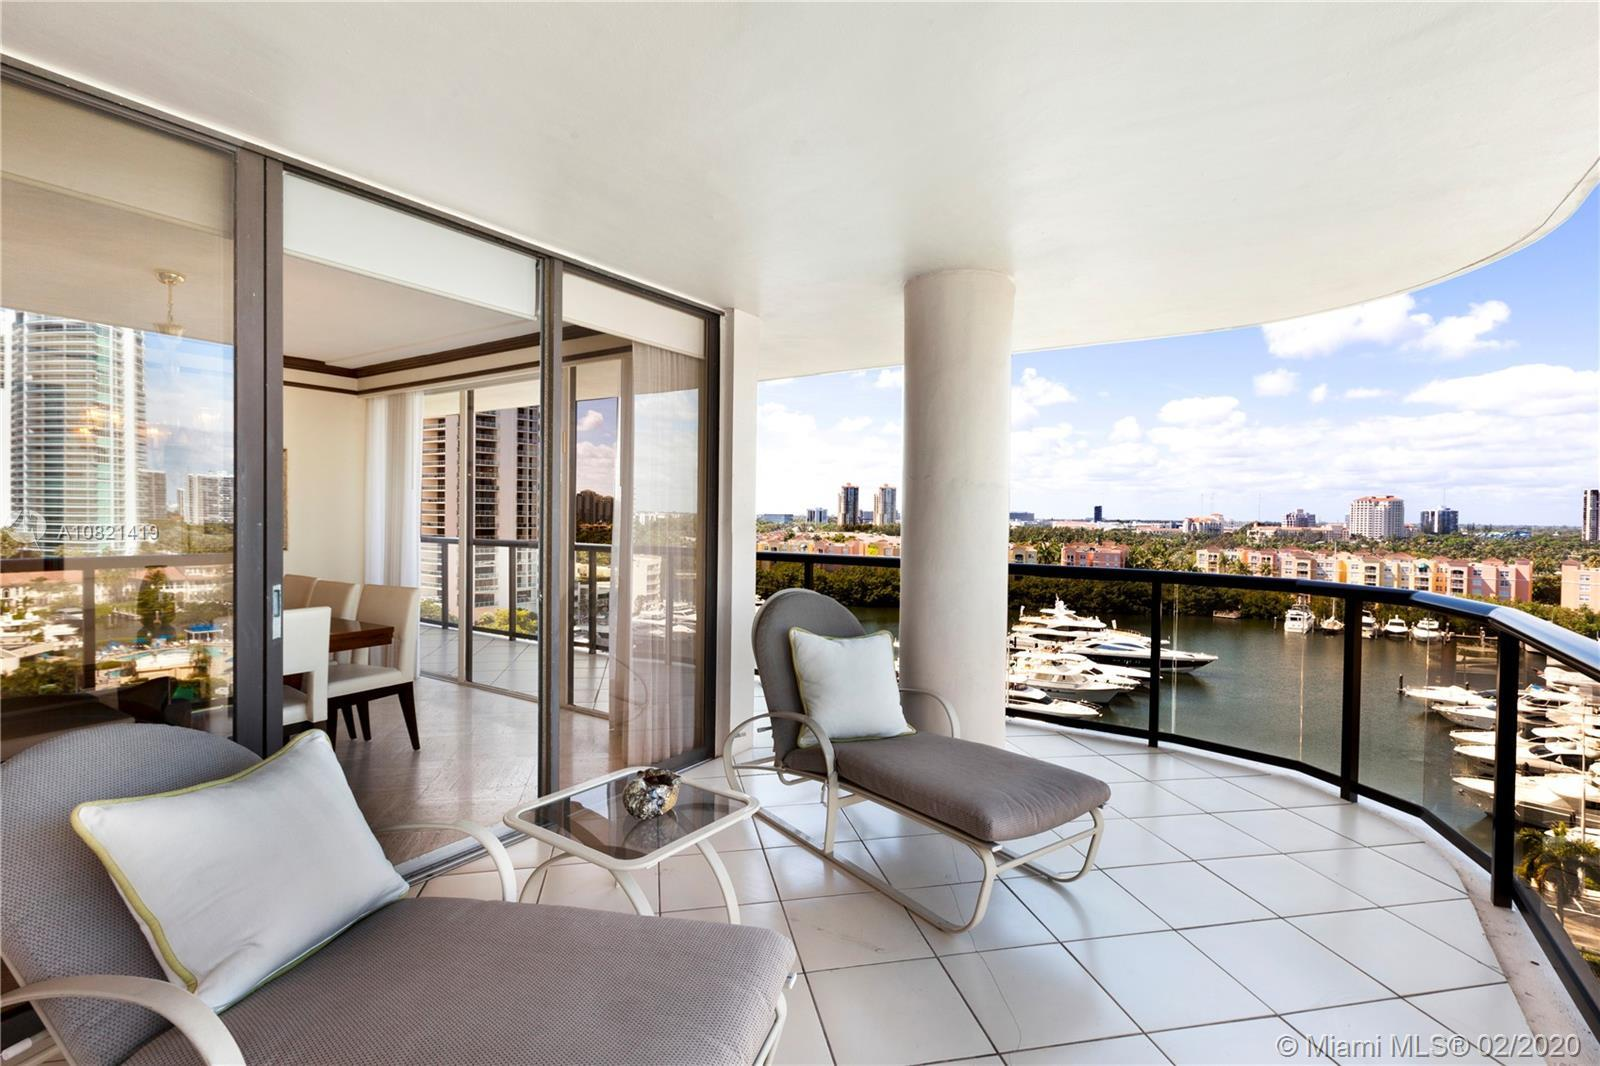 Spectacular 2B 2B E line corner unit in Turnberry Isles exclusive gated community in the heart of Av